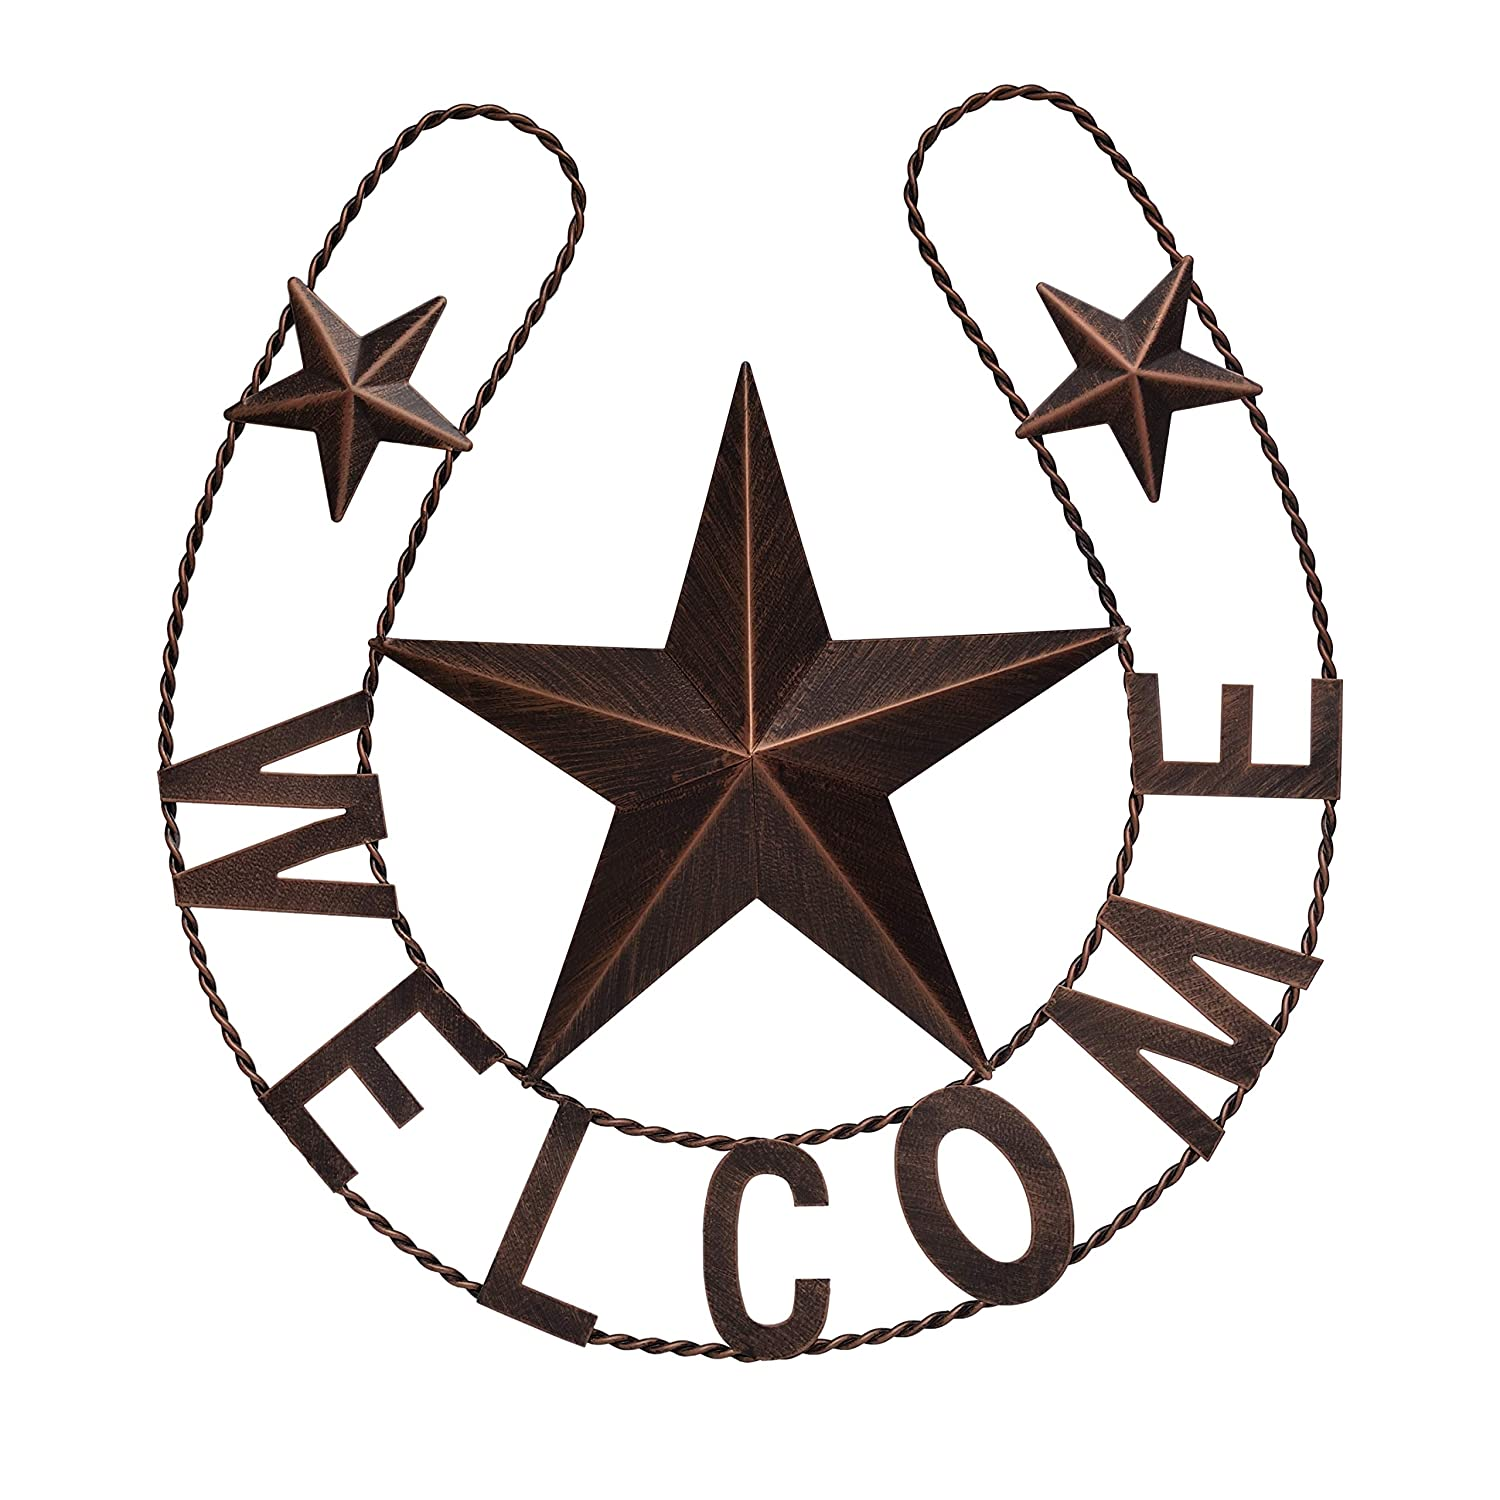 """EBEI Metal Country Lucky Horseshoe Decor Rustic Western Home Wall Decor 19"""" Dark Brown Retro Metal Wall Hanging Decorations Saying Welcome"""